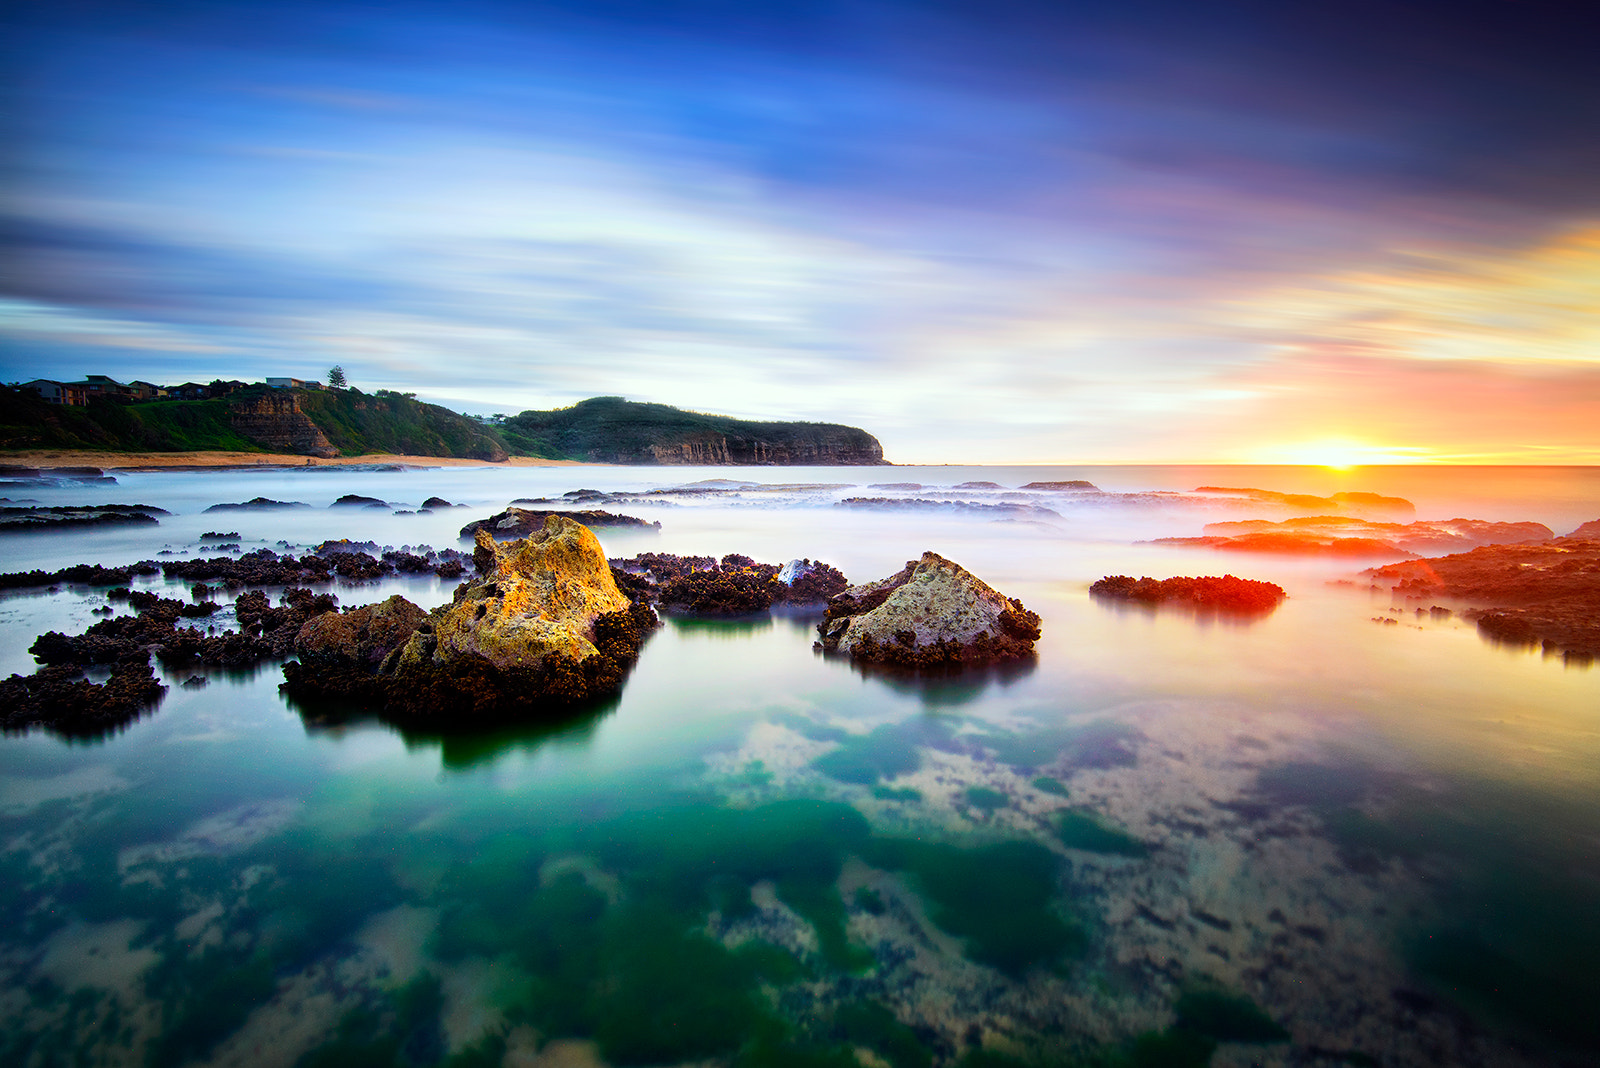 Photograph my Morning by Goff Kitsawad on 500px